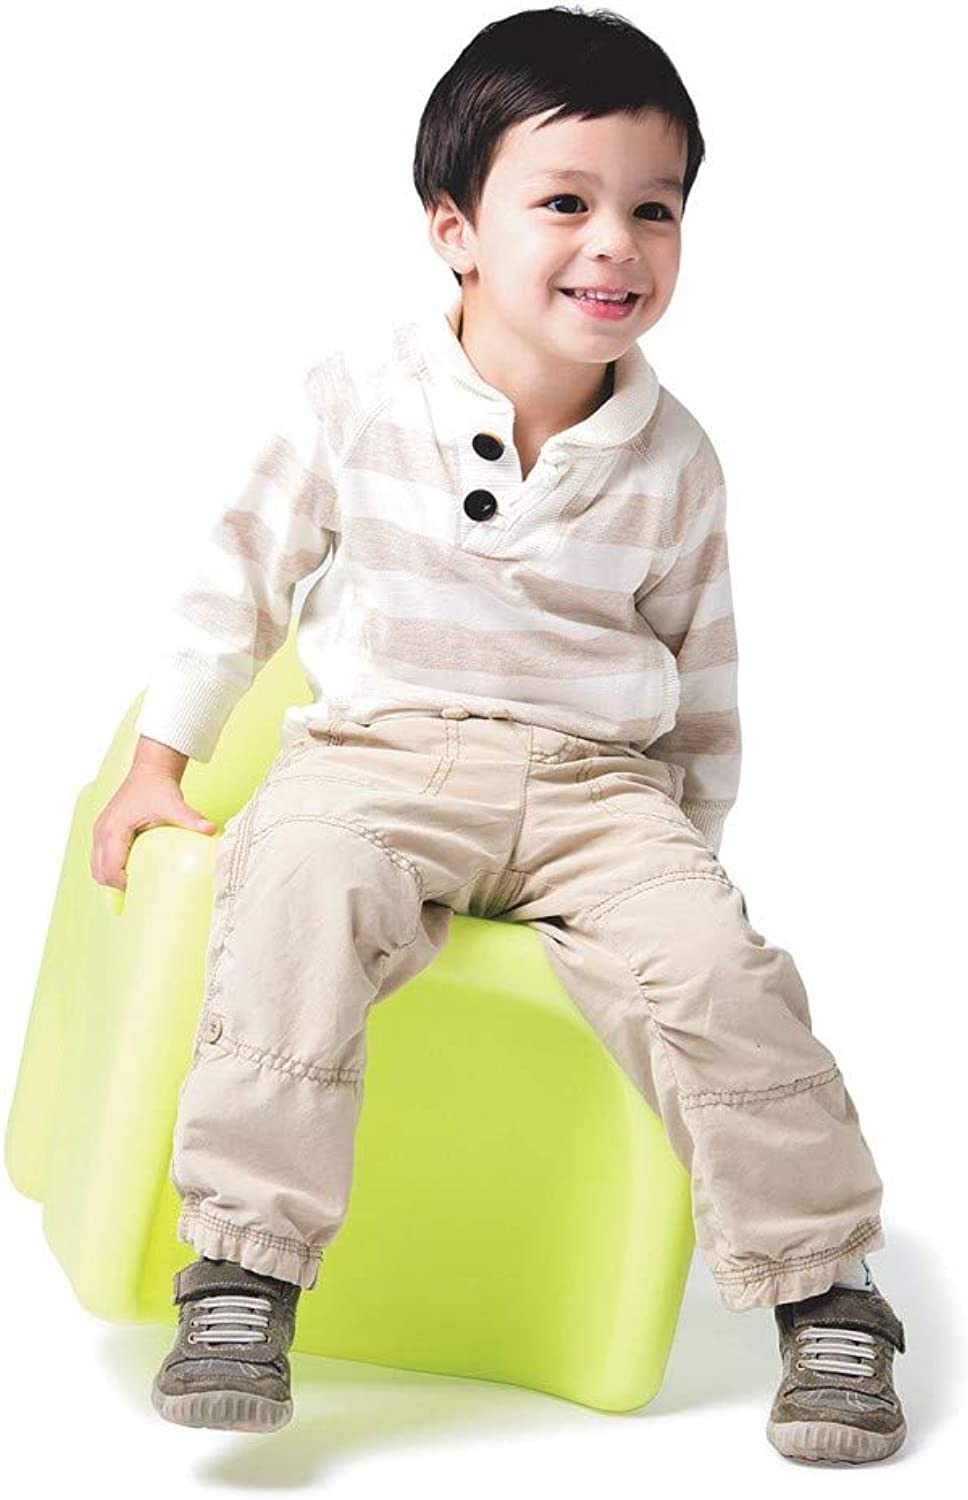 Viggi Kids VG-12-lime Vidget 3-in-1 Flexible Made in The USA-Medium 12  Seat Height Ages 3-6 Active, Stool & Desk, Lively Lime